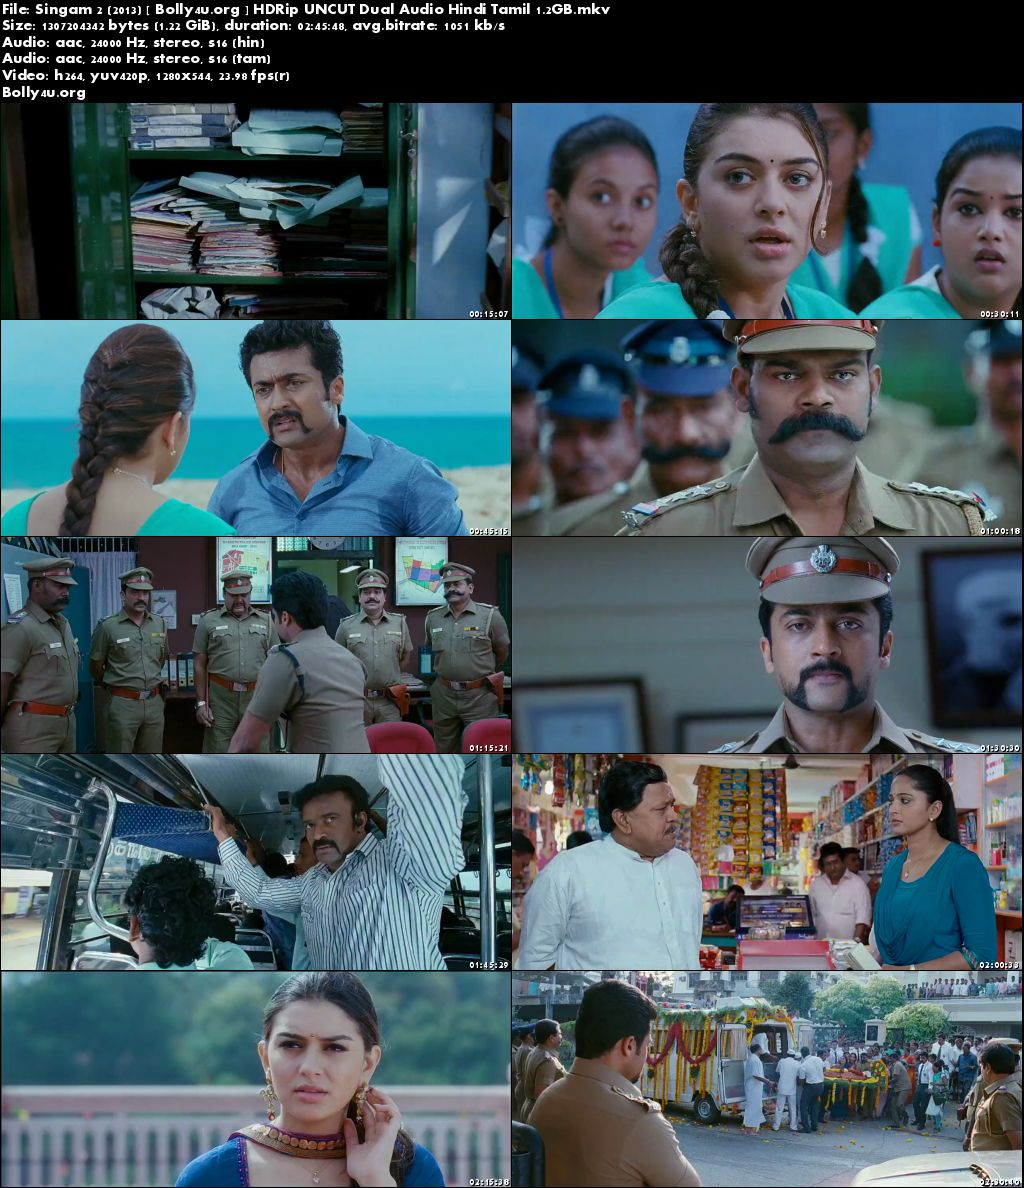 Singam 2 2013 HDRip UNCUT Hindi Dubbed Dual Audio 720p Download